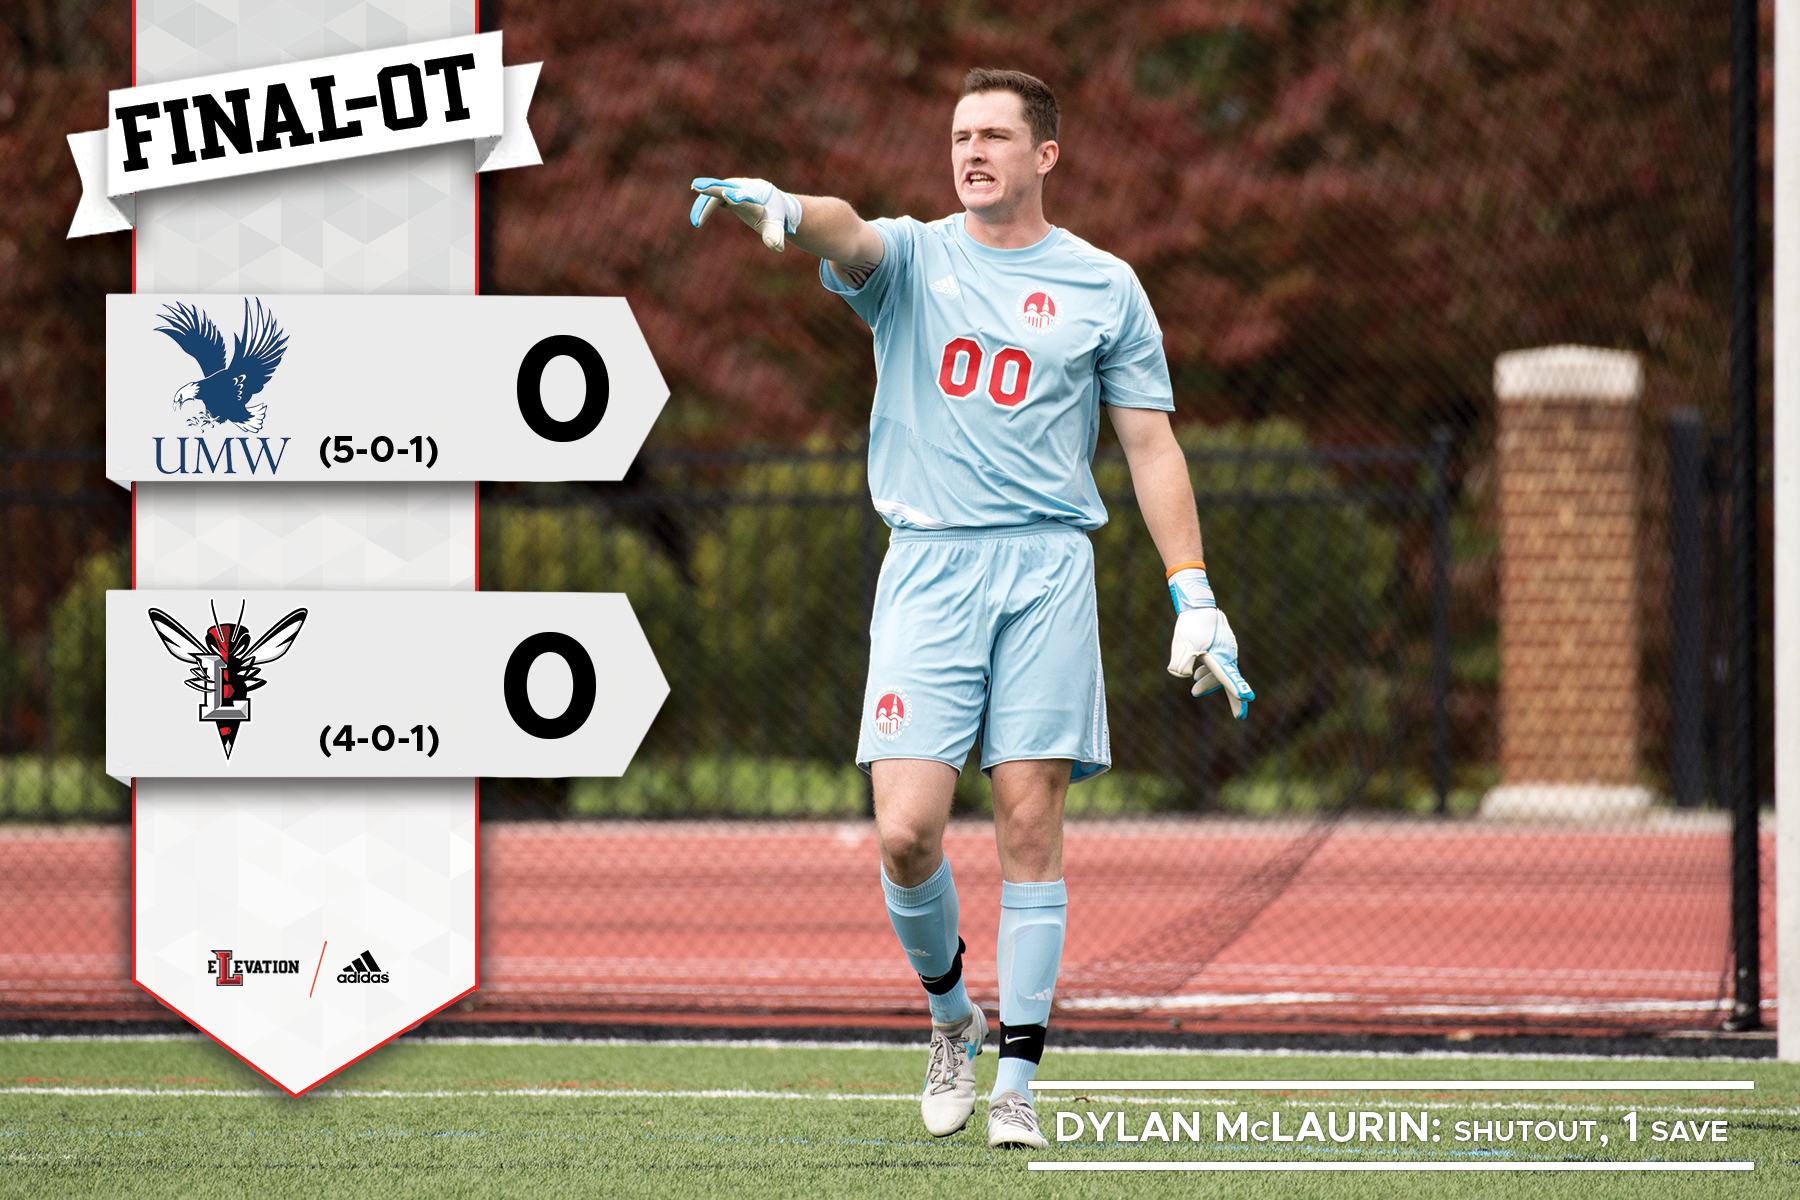 Dylan McLaurin points to direct the defense. Graphic showing scoreless draw in UMW/Lynchburg soccer match.